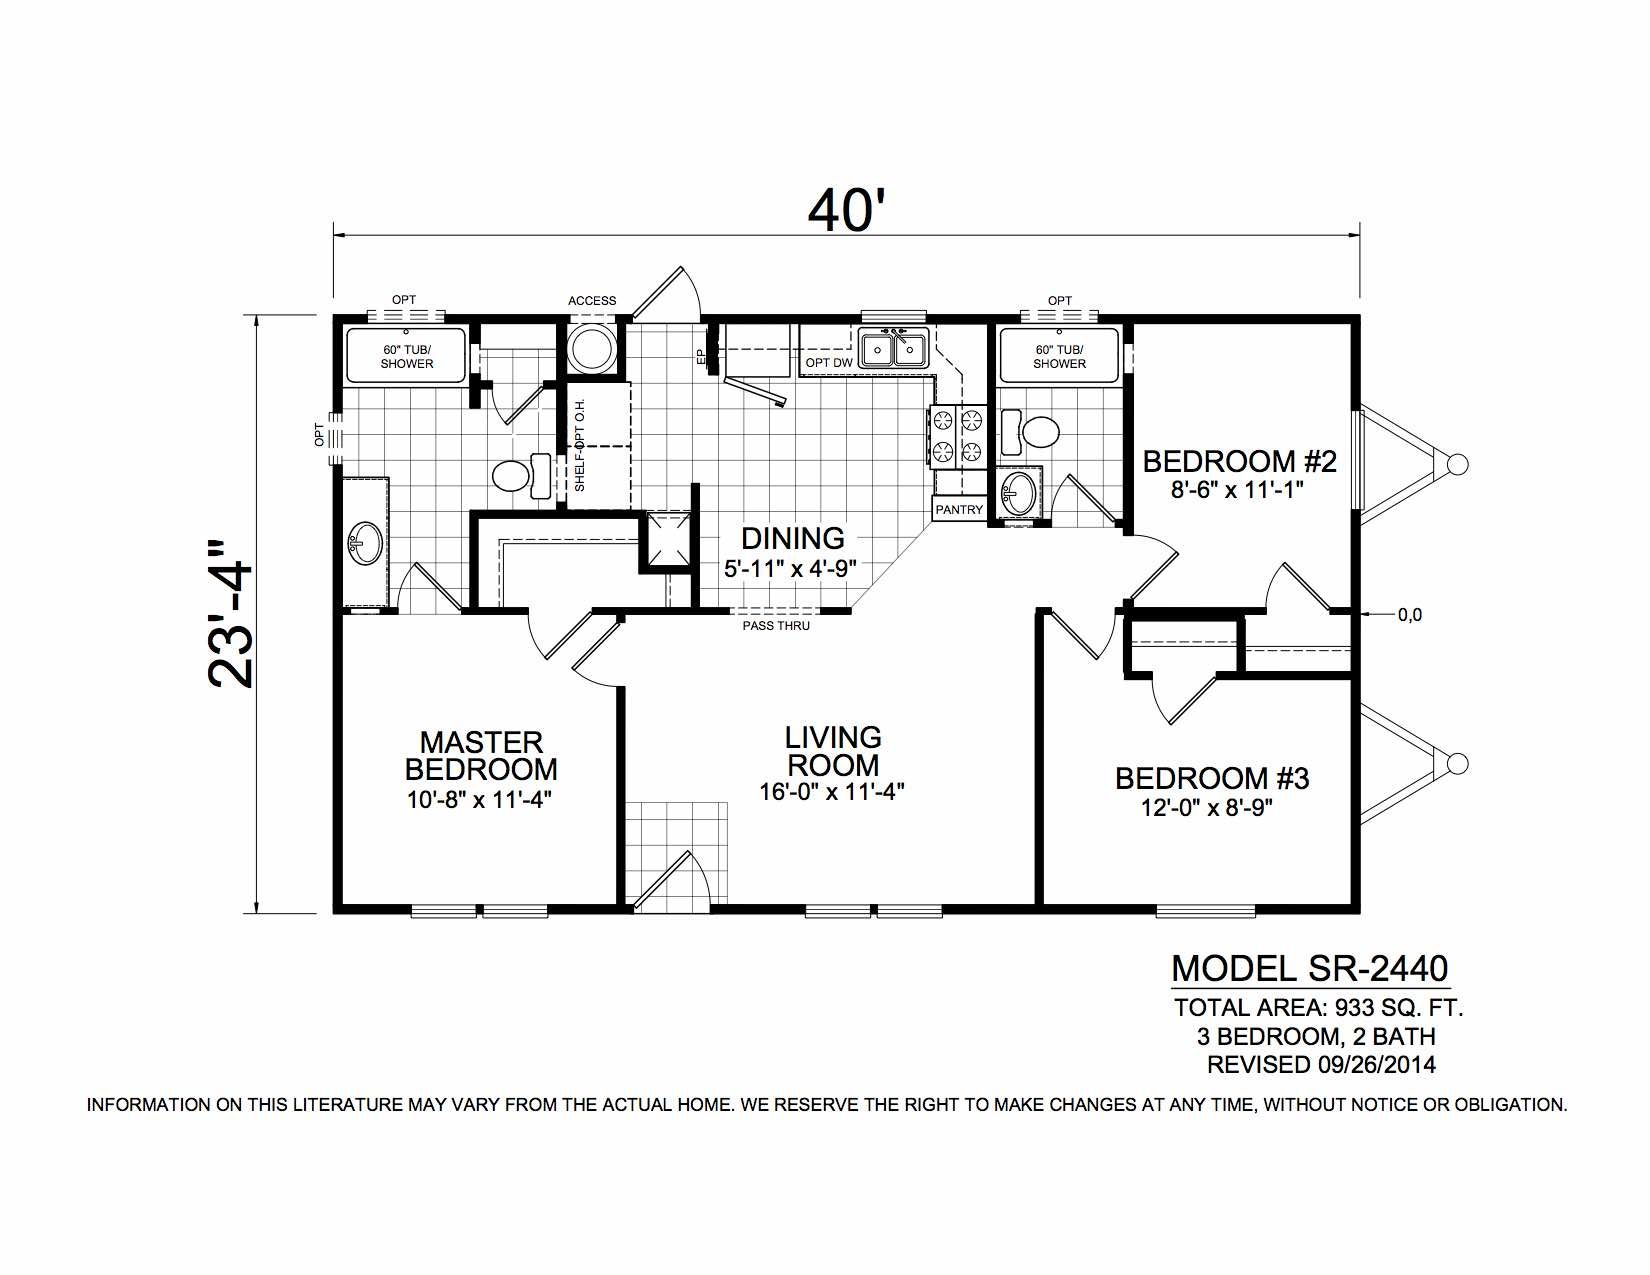 Homes Direct Modular Homes - Model SR2440 - Floorplan